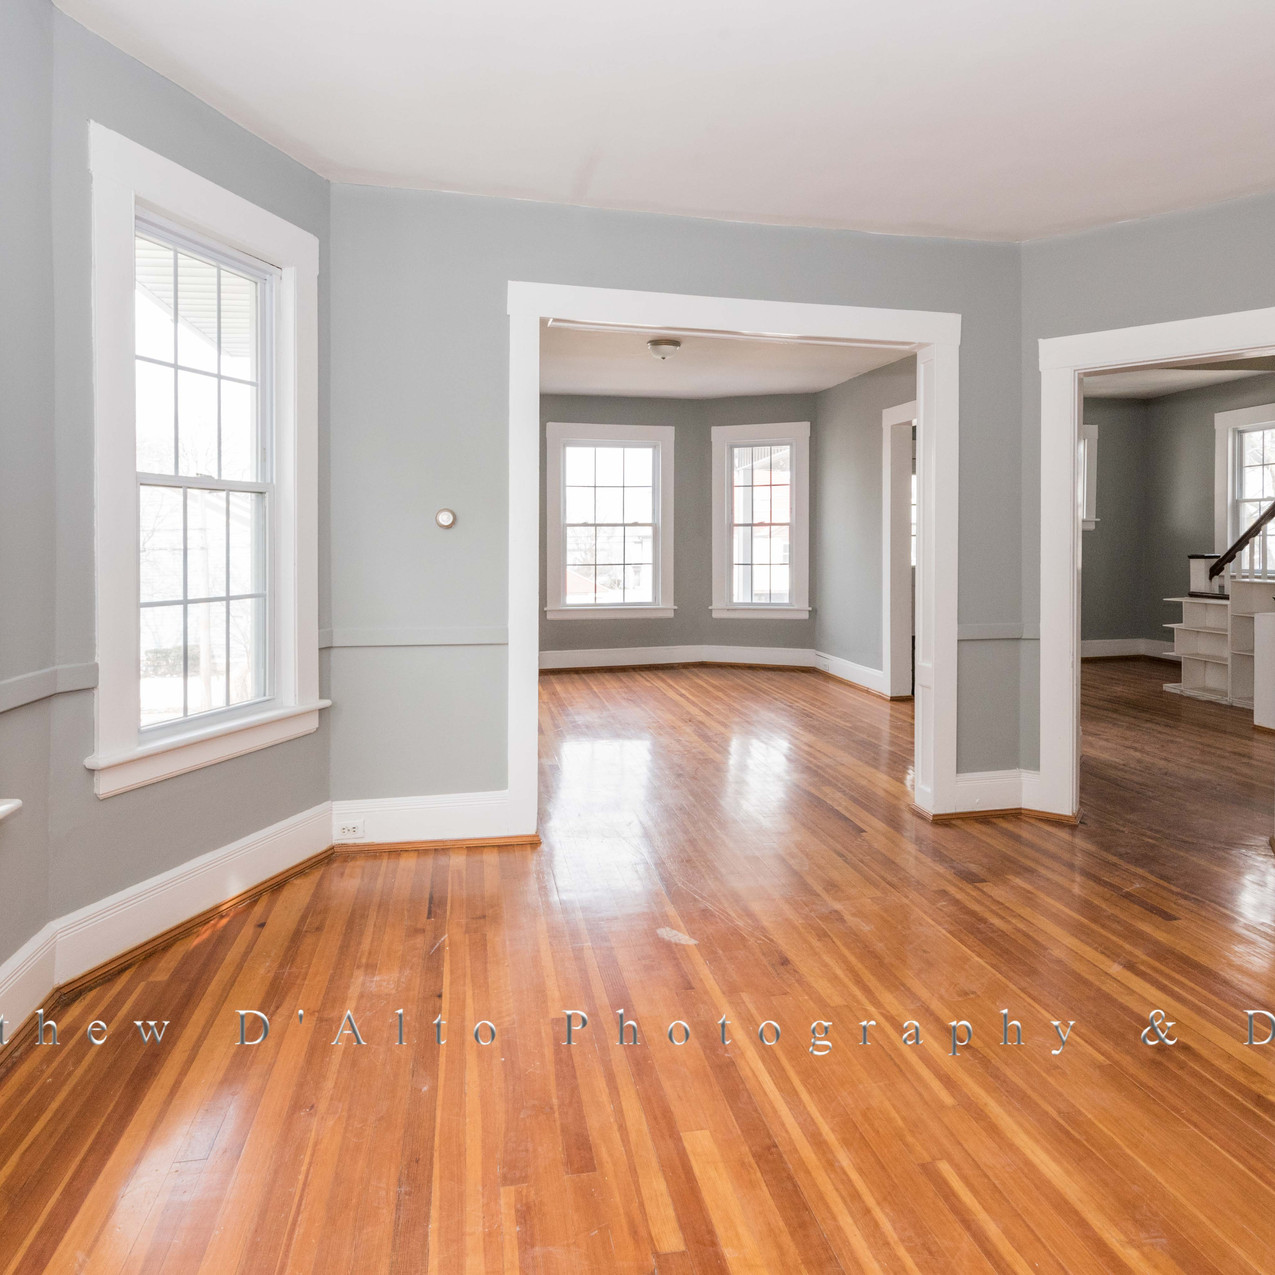 Real Estate Photography by © Matthew D'Alto Photography & Design